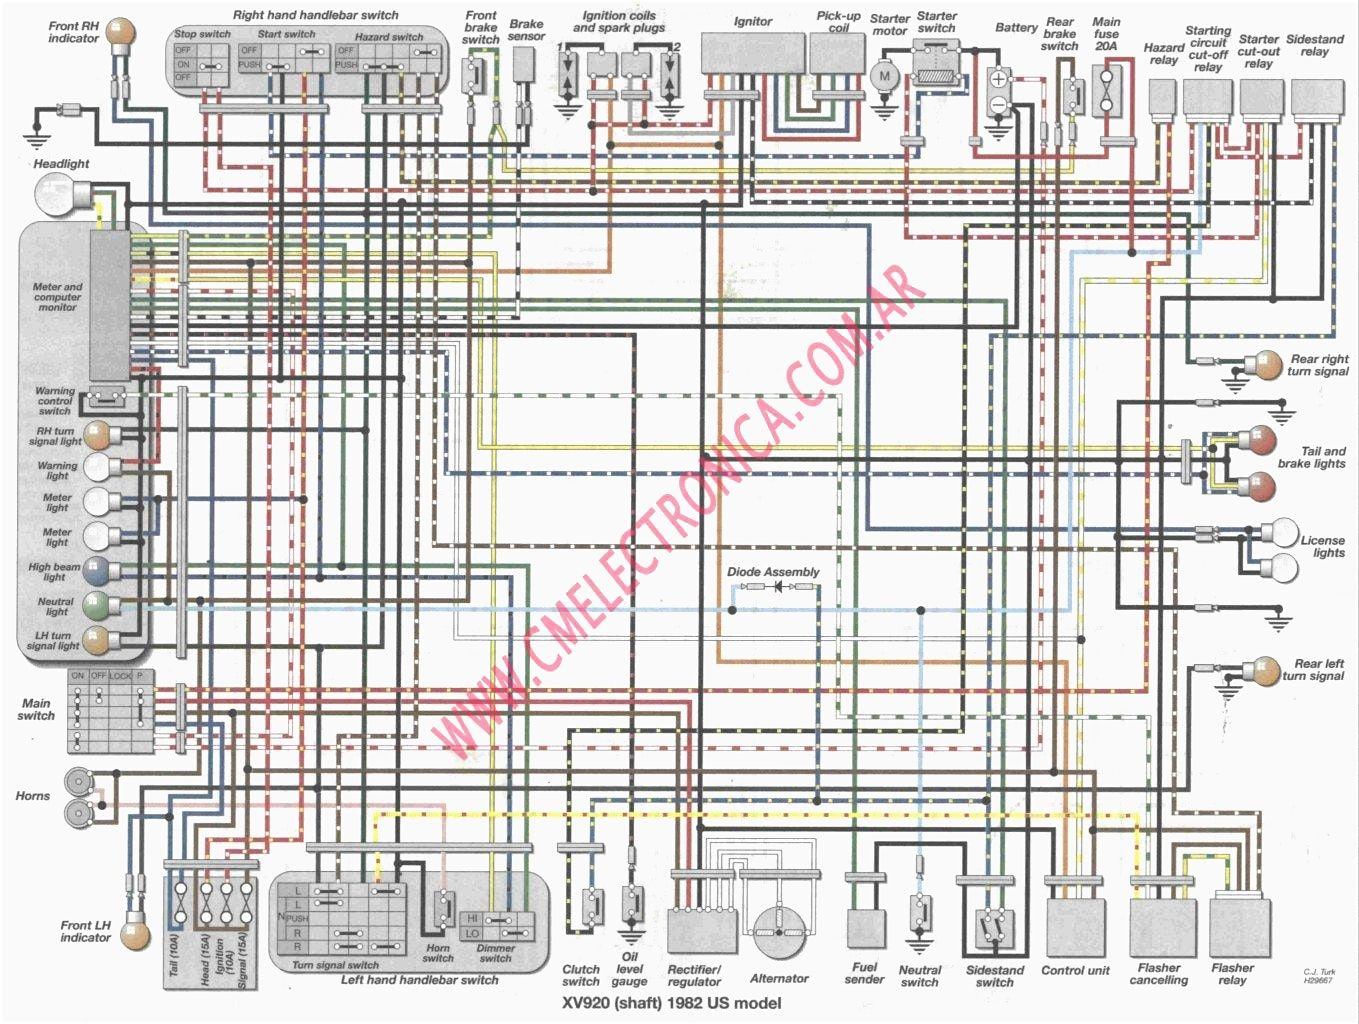 hight resolution of diagrams 15341278 xv250 wiring diagram yamaha virago 250 inside new 1981 yamaha virago 750 ignition wiring diagram